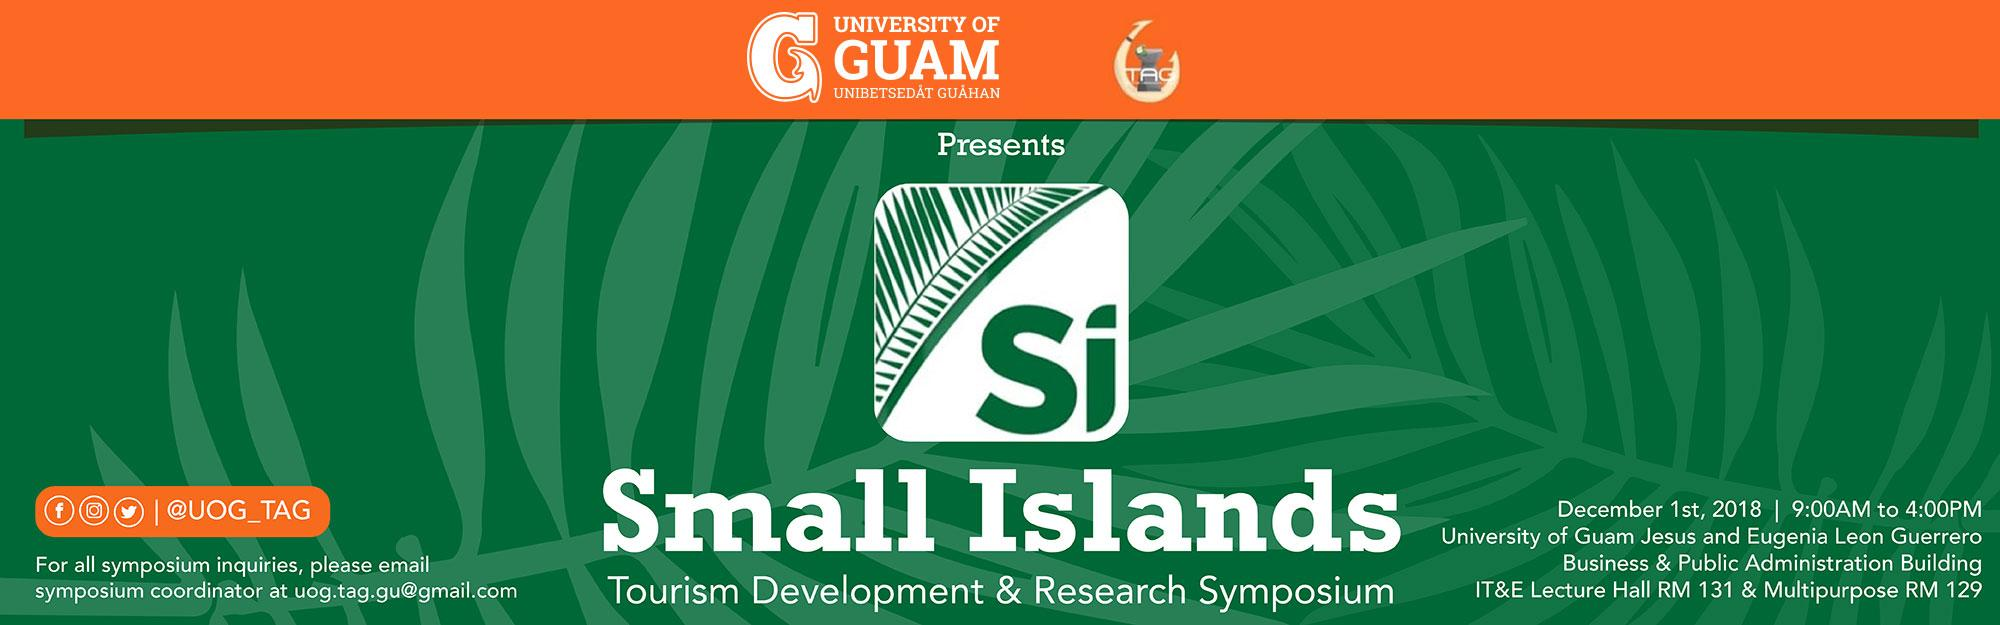 Small Islands Tourism Development and Research Symposium